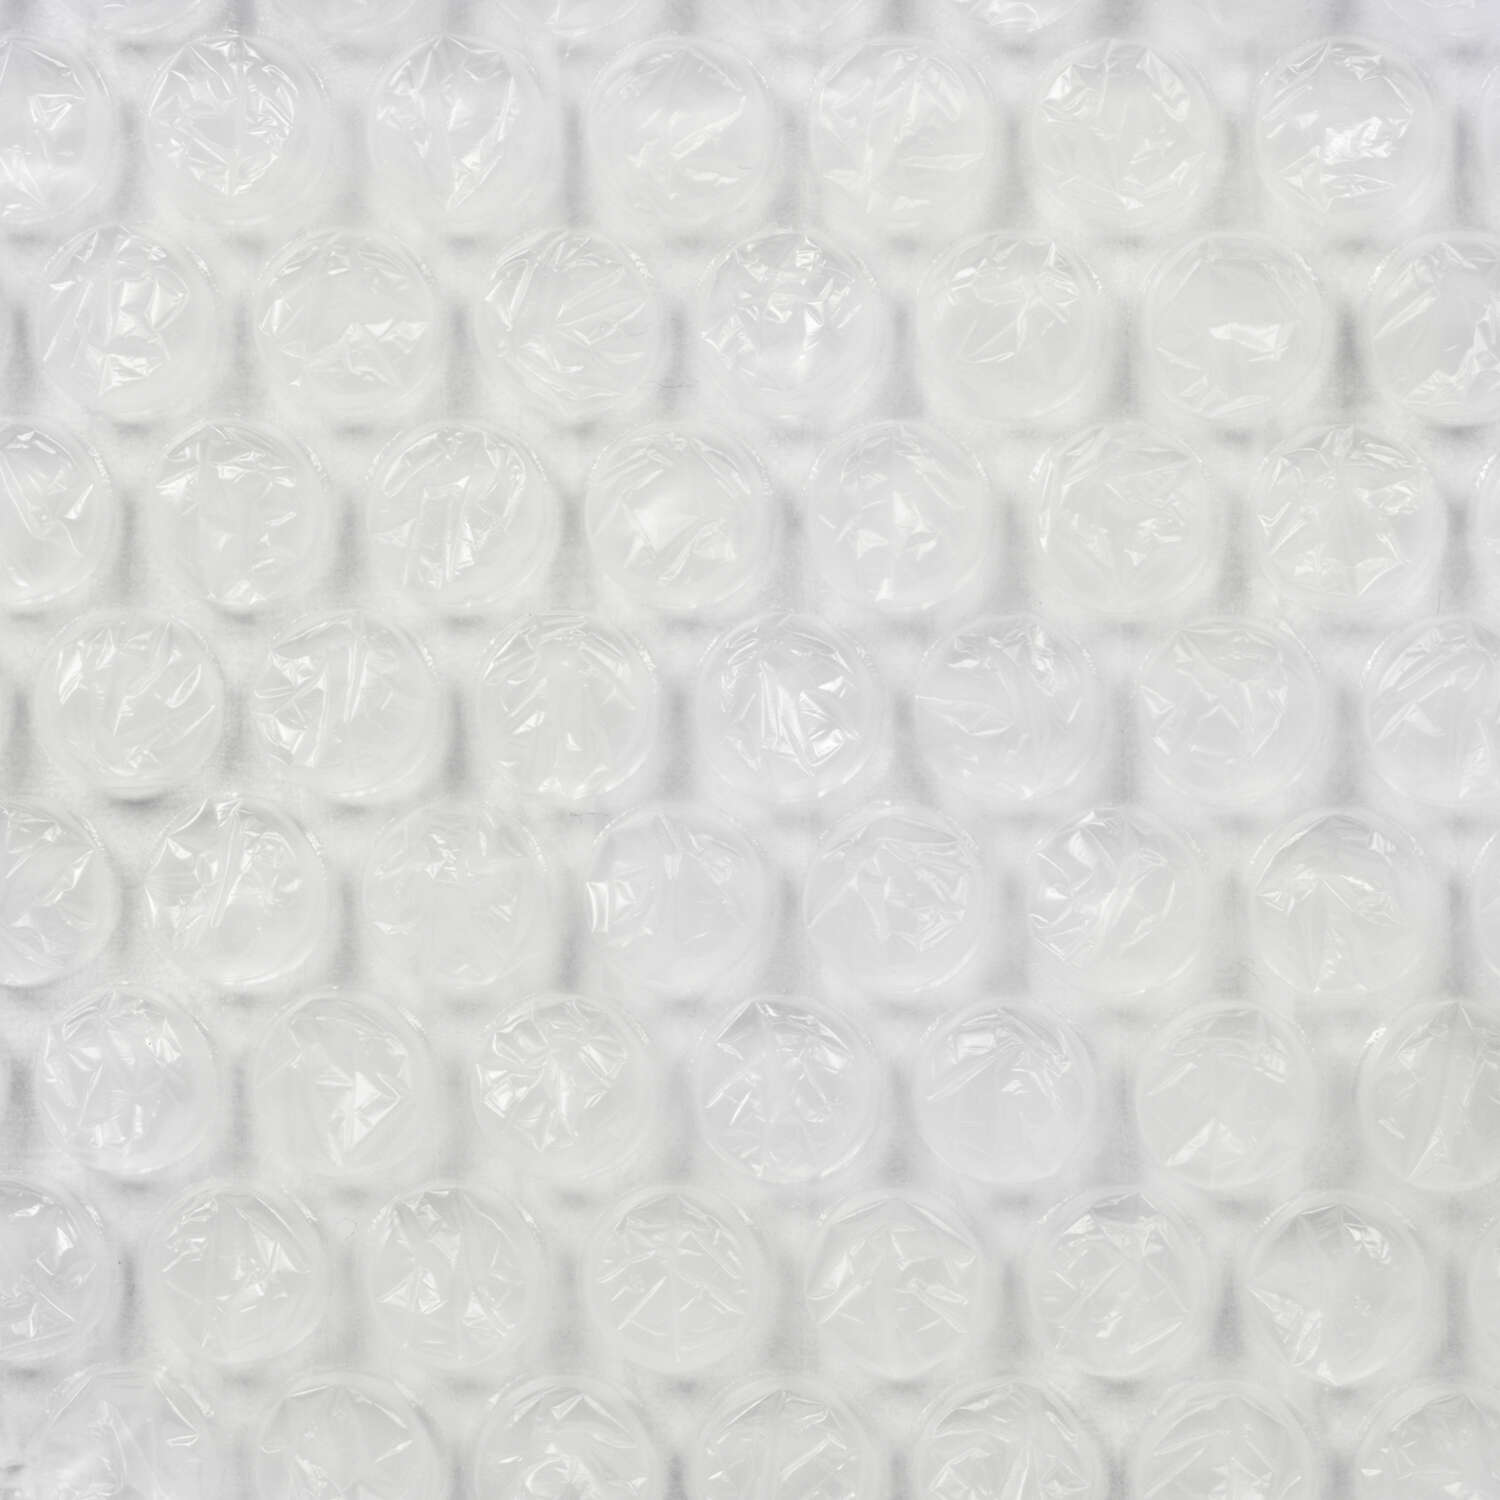 Duck Brand  24 in. W x 35 ft. L Bubble Wrap